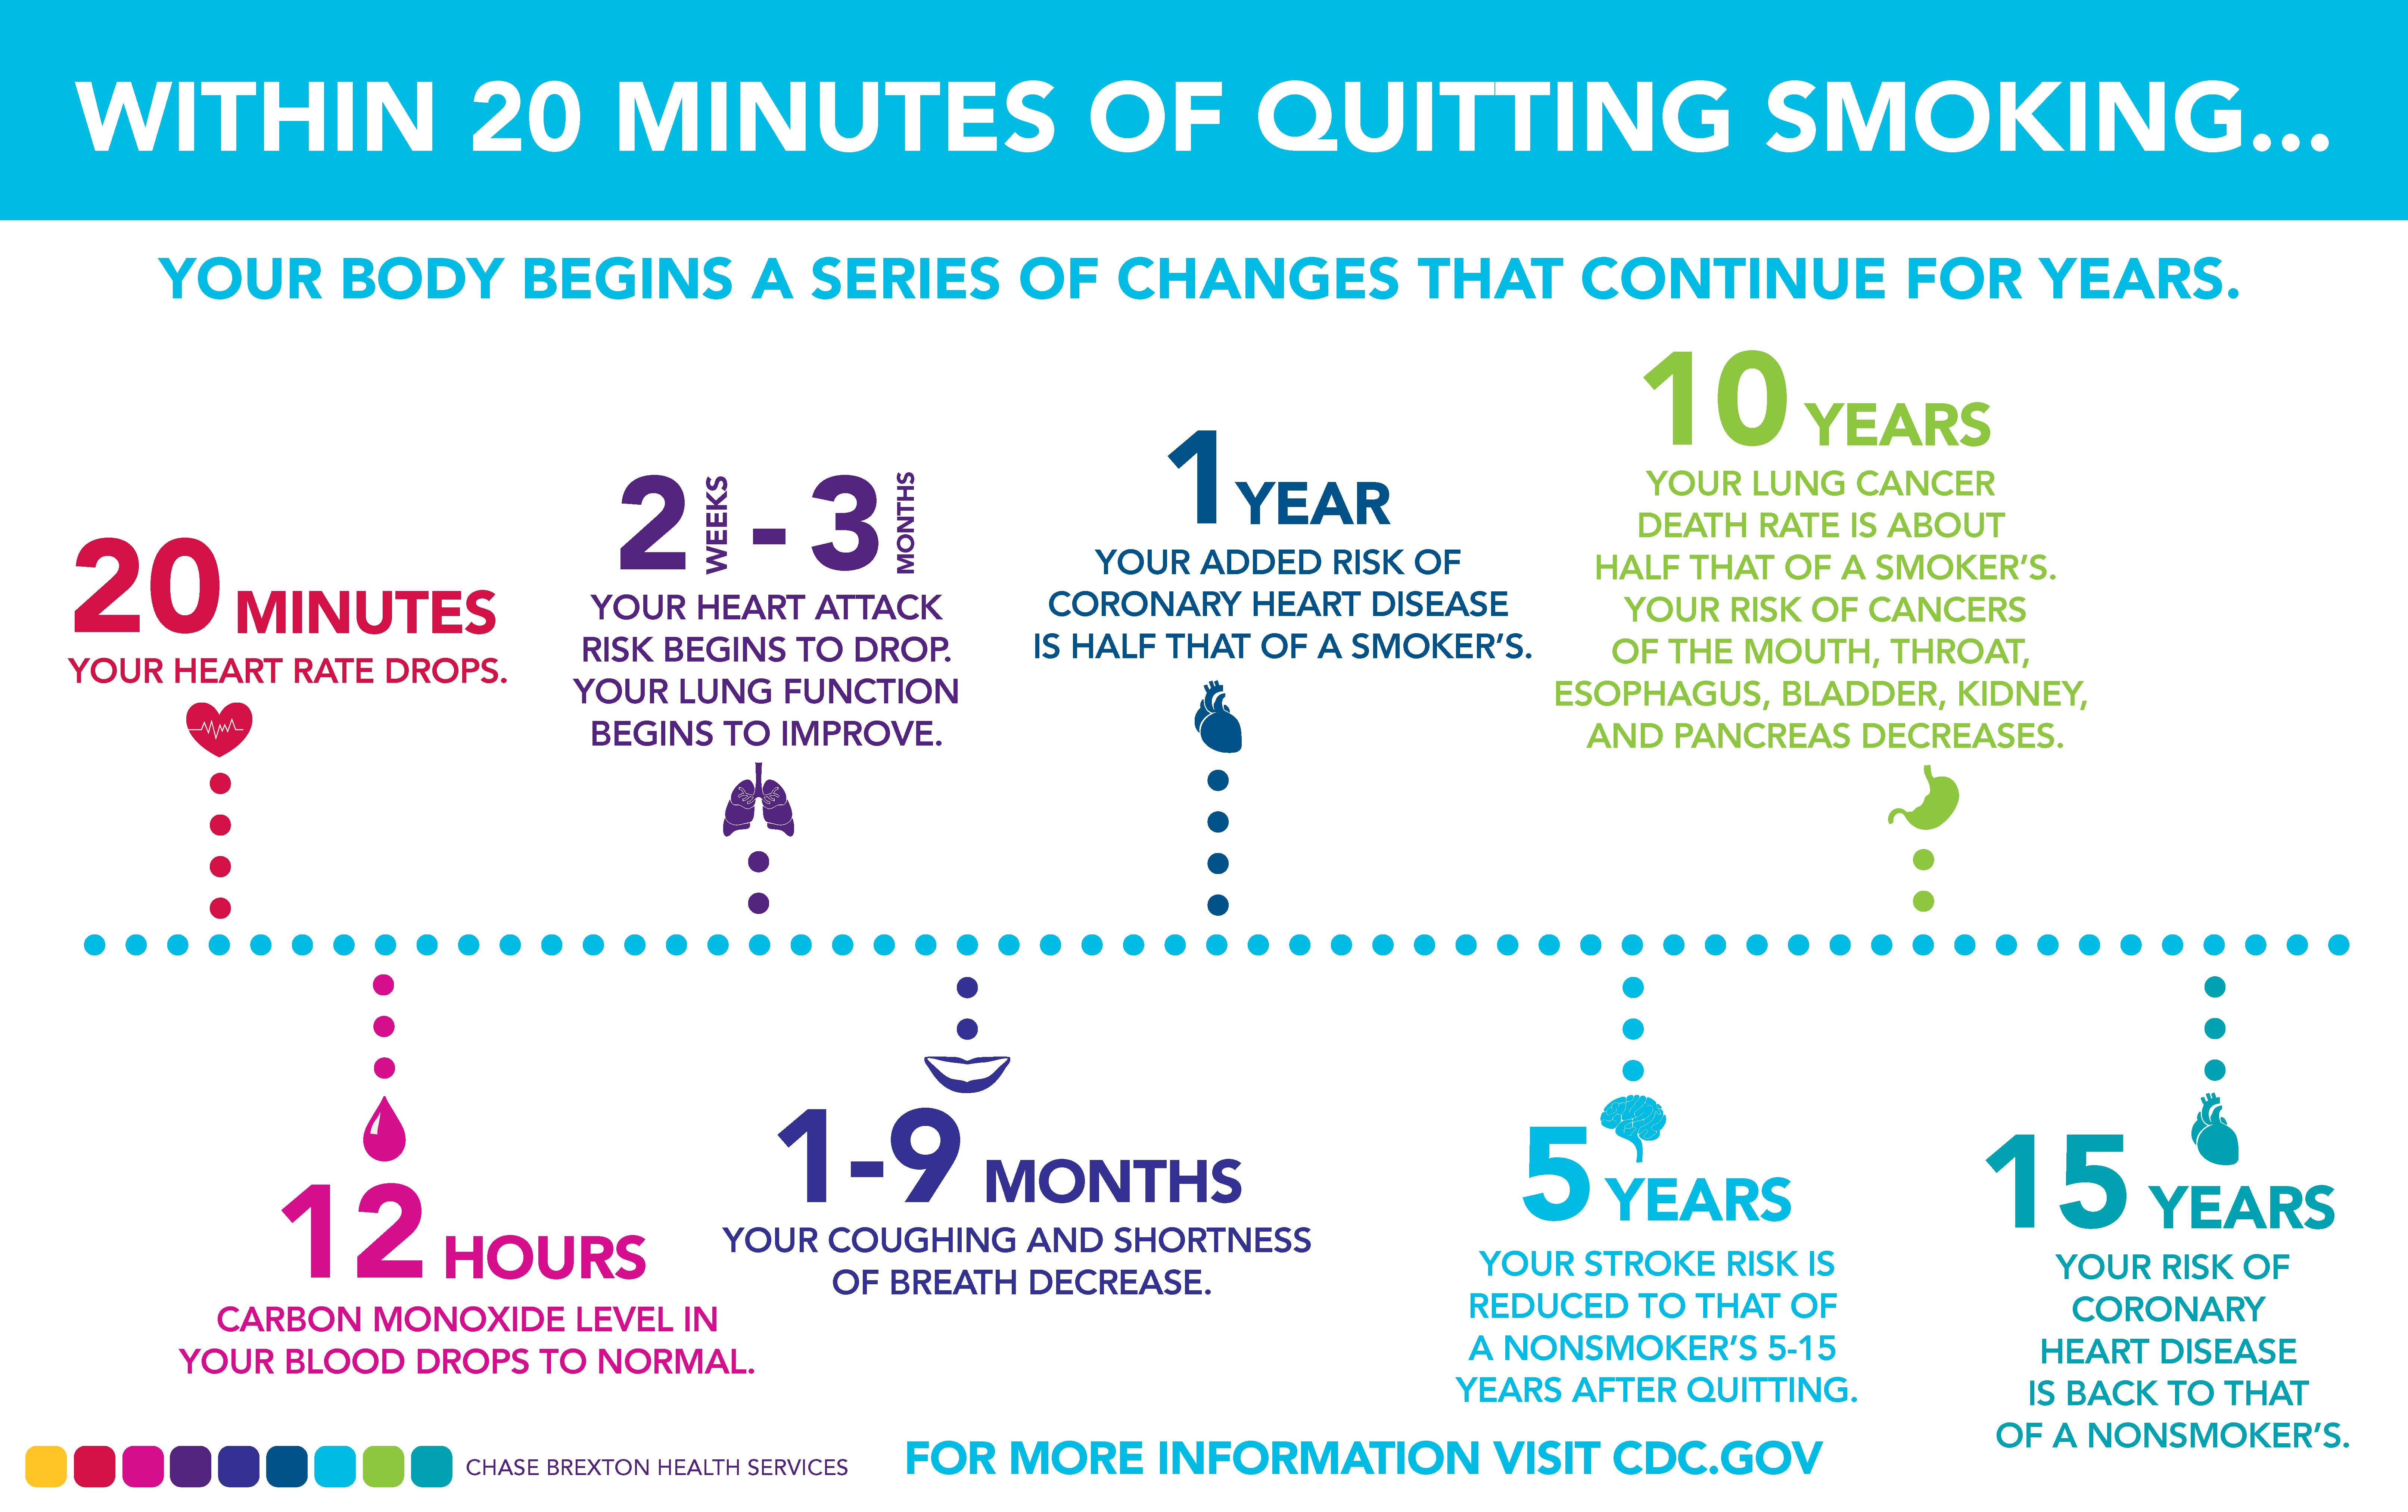 Considering Goals For Within 20 Minutes Of Quitting